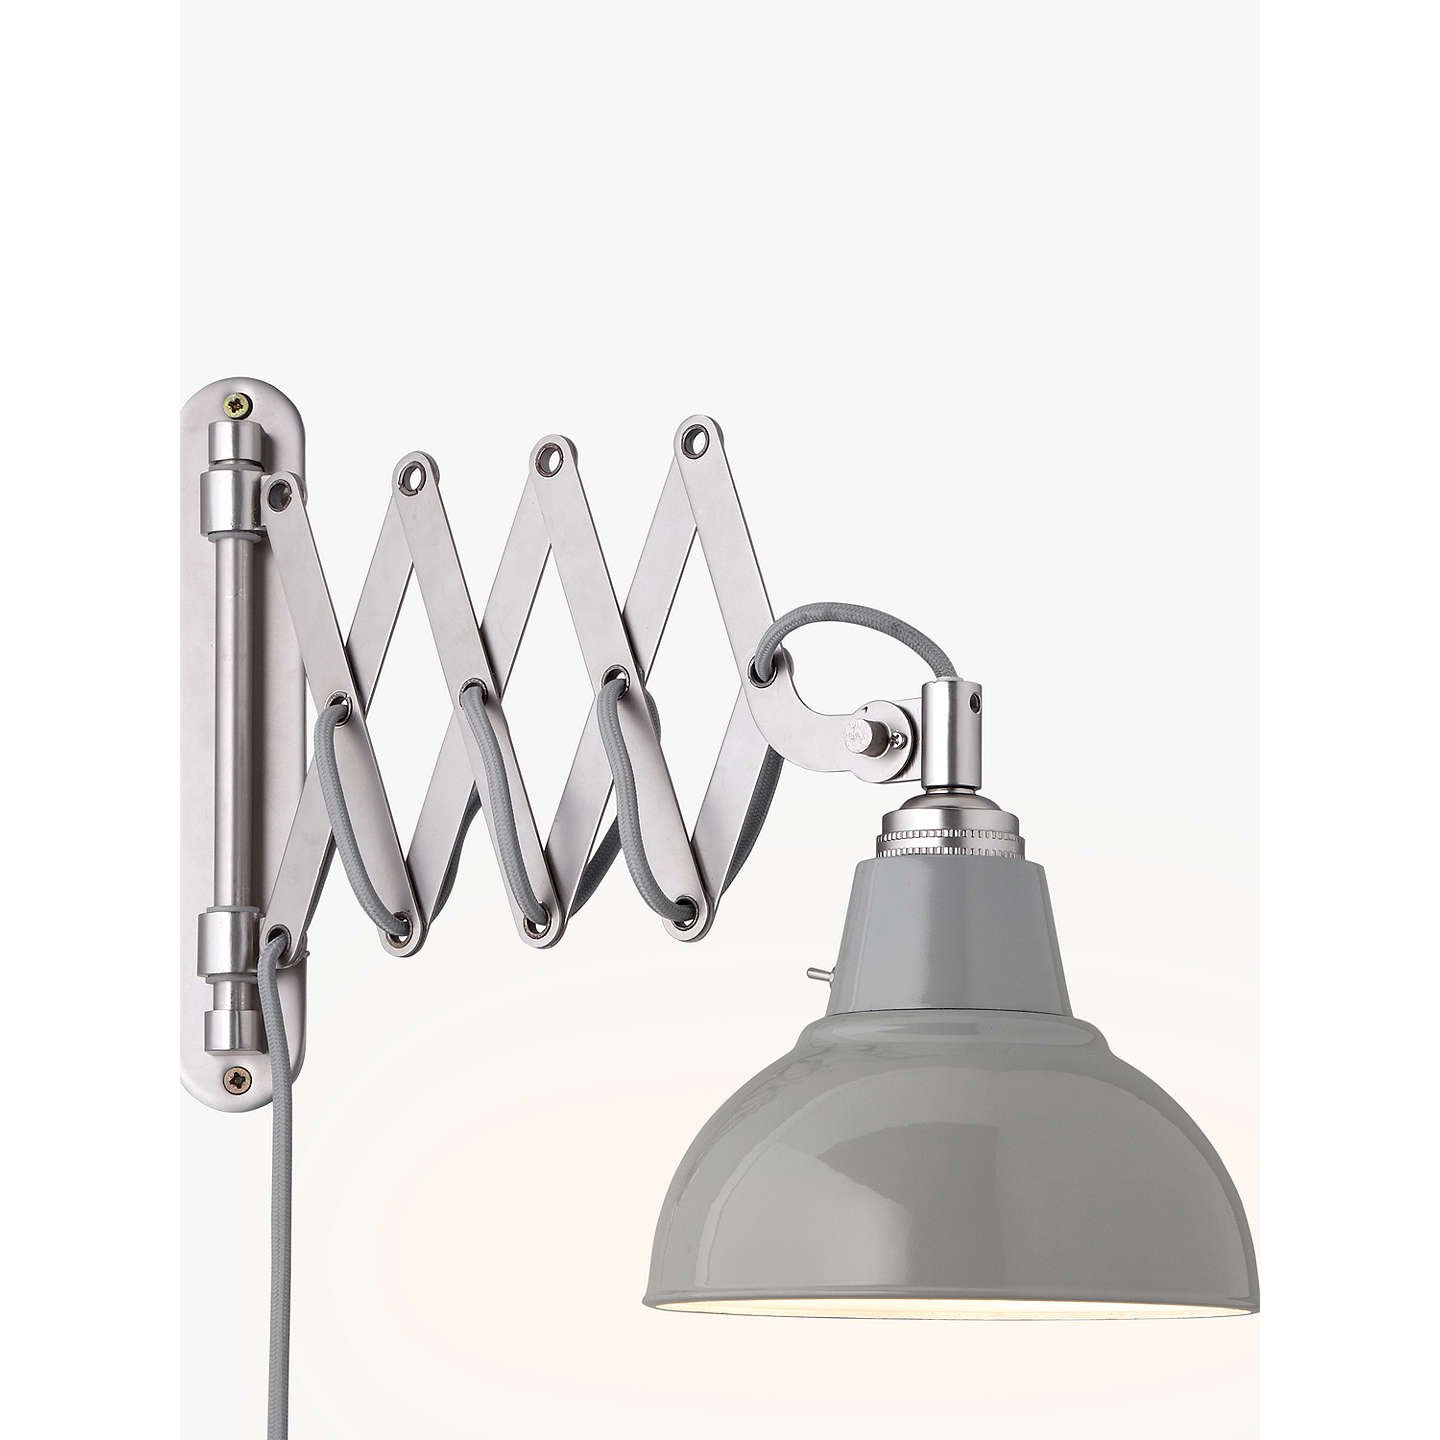 Croft collection campbell extending wall light at john lewis buycroft collection campbell extending wall light grey online at johnlewis aloadofball Choice Image